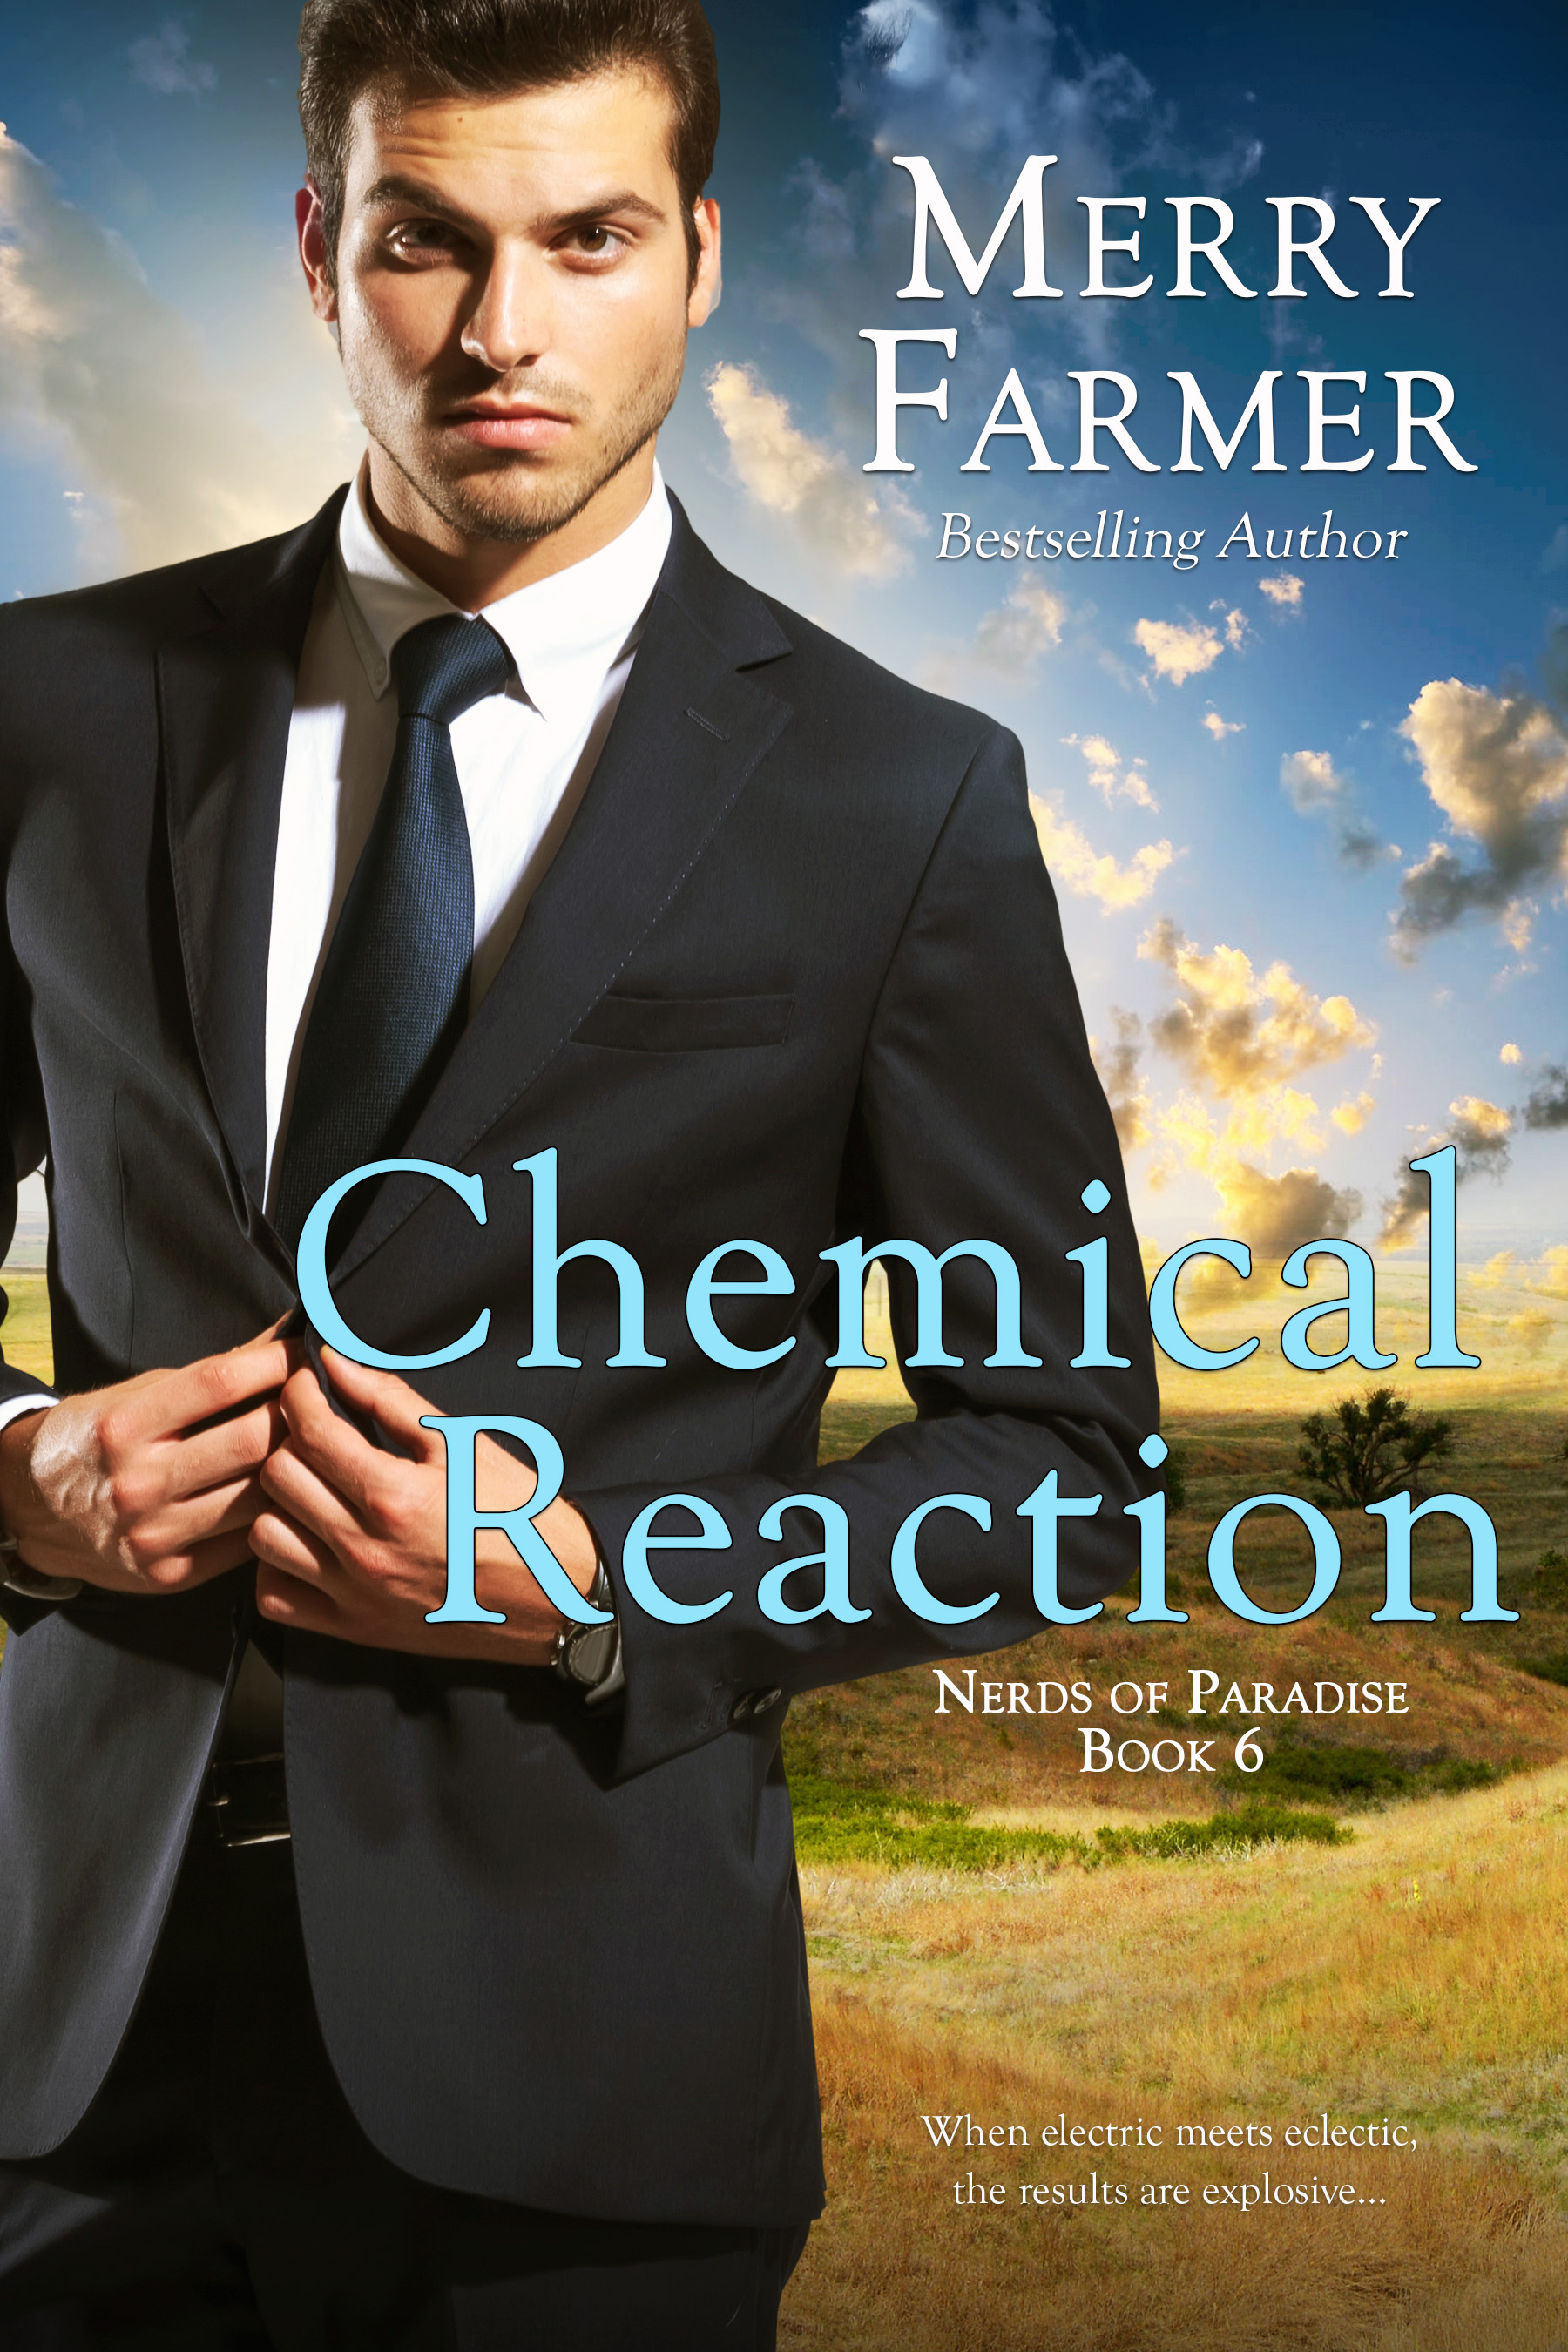 Chemical Reaction (Book 6) - Calliope Clutterbuck has always been the life of the party, a veritable friend-magnet. Except for that time in eighth grade when her former bestie, Kathy Standish, stole her boyfriend at the Templesmith's pool party. But that's all water under the bridge, right? She's and adult now and approaches life rationally and maturely.Except that her sister and her close friends are all now in relationships, leaving her the perpetual third wheel. And guess who just moved back to town? Yep, Kathy.Jonathan Cross has had his eye on Calliope almost from the moment he moved to Haskell to work for Paradise Space Flight. But his job—and his position as Howie's go-to event organizer—has kept him too busy to do anything about it. Until he is able to literally rescue Calliope and sweep her off her feet.So they finally get together and date happily ever after, right?If only it were that easy!When Jonathan takes on a leadership role in Howie's fall mixer, renovating old Haskell buildings, he naturally picks Calliope to be his right-hand woman. But old wounds and new rivalries abound when Kathy also ends up smack in the middle of the project. Can Calliope and Jonathan's fledgling relationship overcome the pain of the past, or will insecurity end it before it takes off?PLEASE BE ADVISED: Steam level - HOT